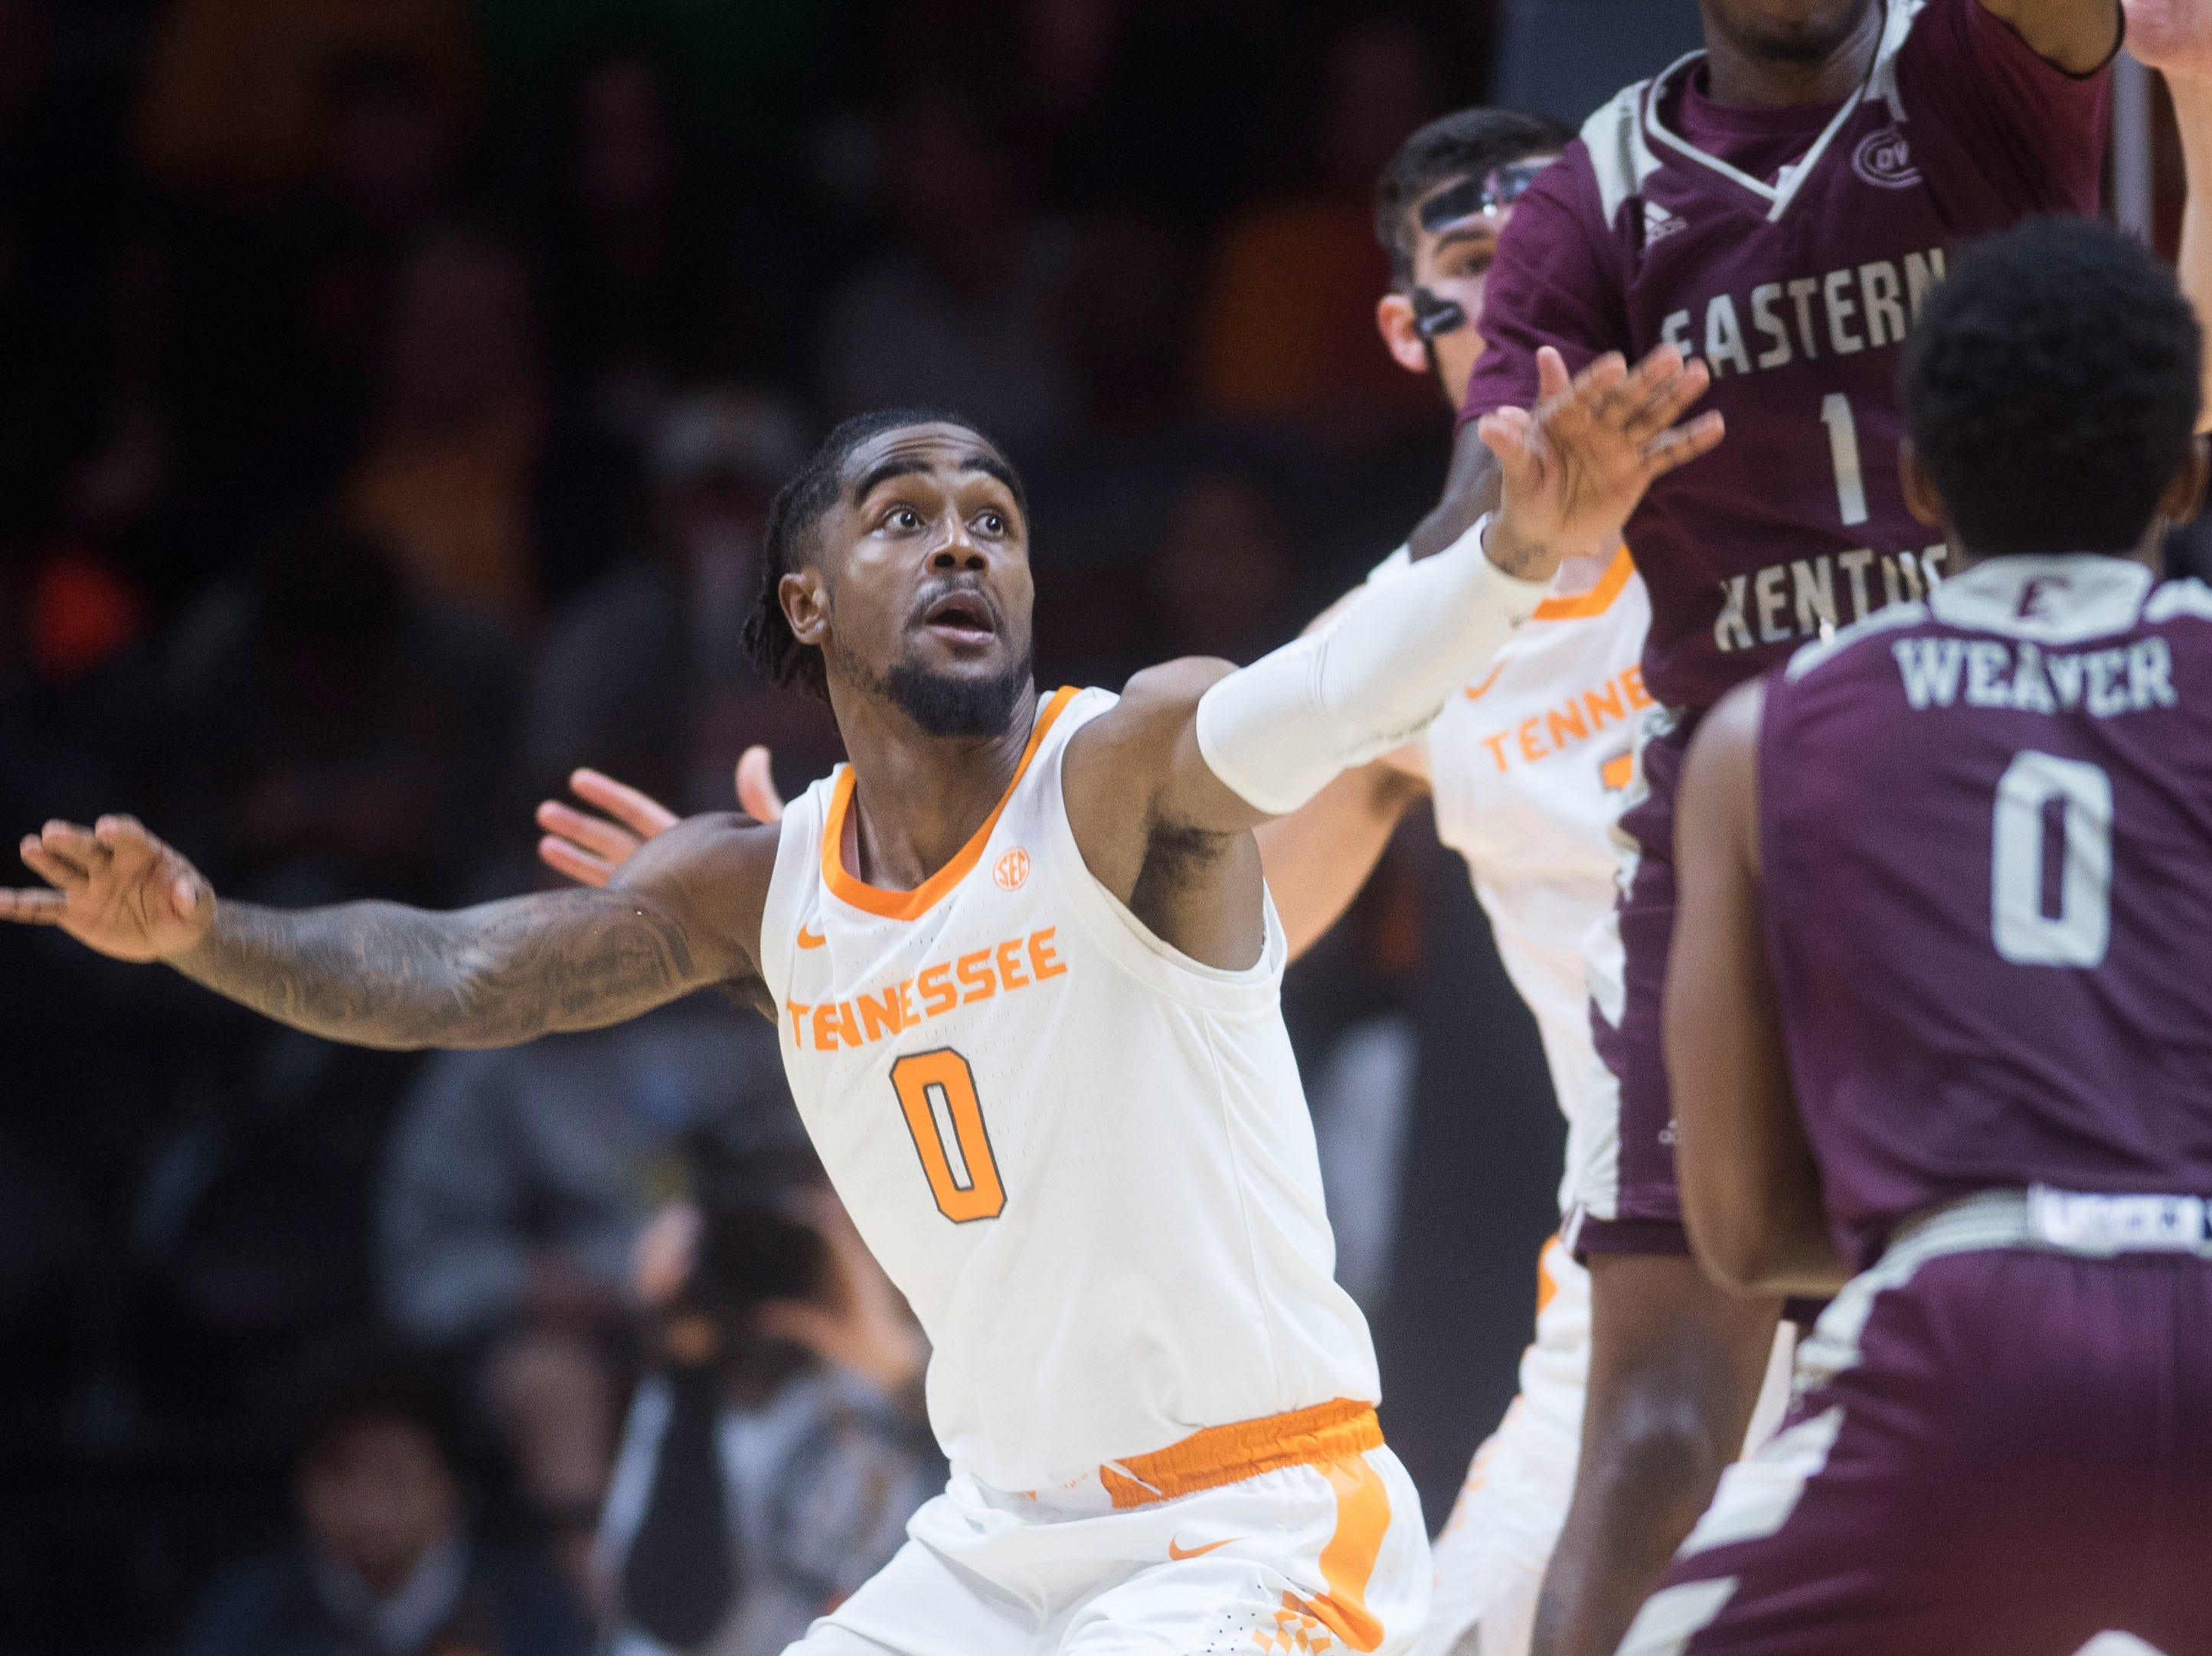 Tennessee's Jordan Bone (0) keeps his eyes on the ball during the second half of a NCAA men's basketball game between Tennessee and Eastern Kentucky University at Thompson-Boling Arena Wednesday, Nov. 28, 2018. Tennessee defeated EKU 95-67.